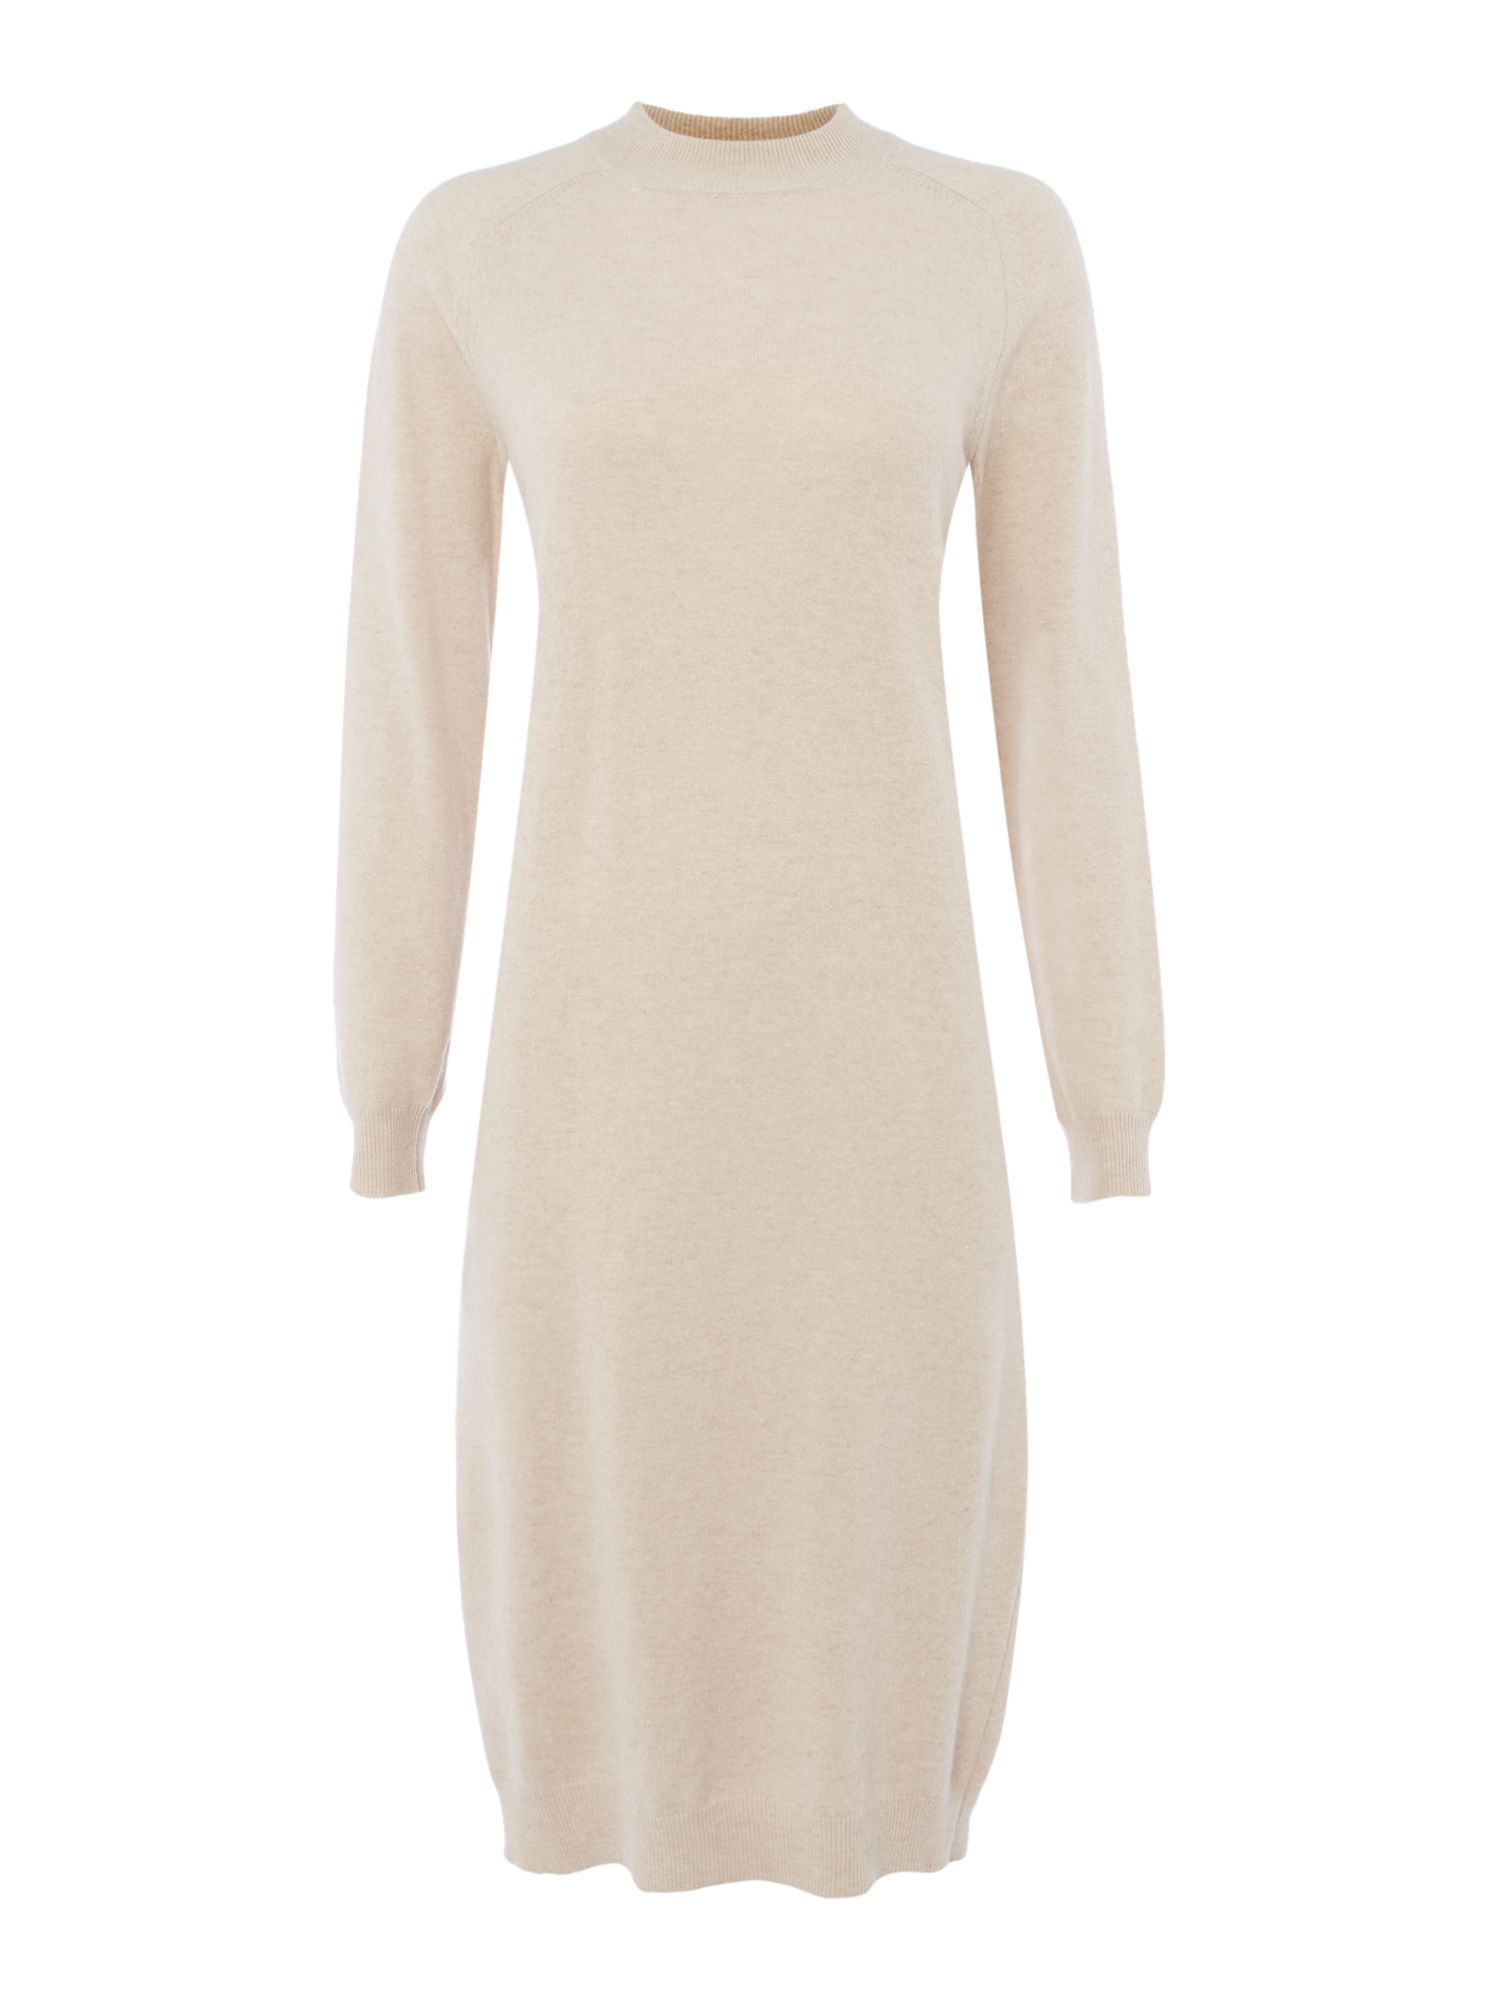 Max Mara Weekend Riom round neck long sleeve knitted dress, Sand